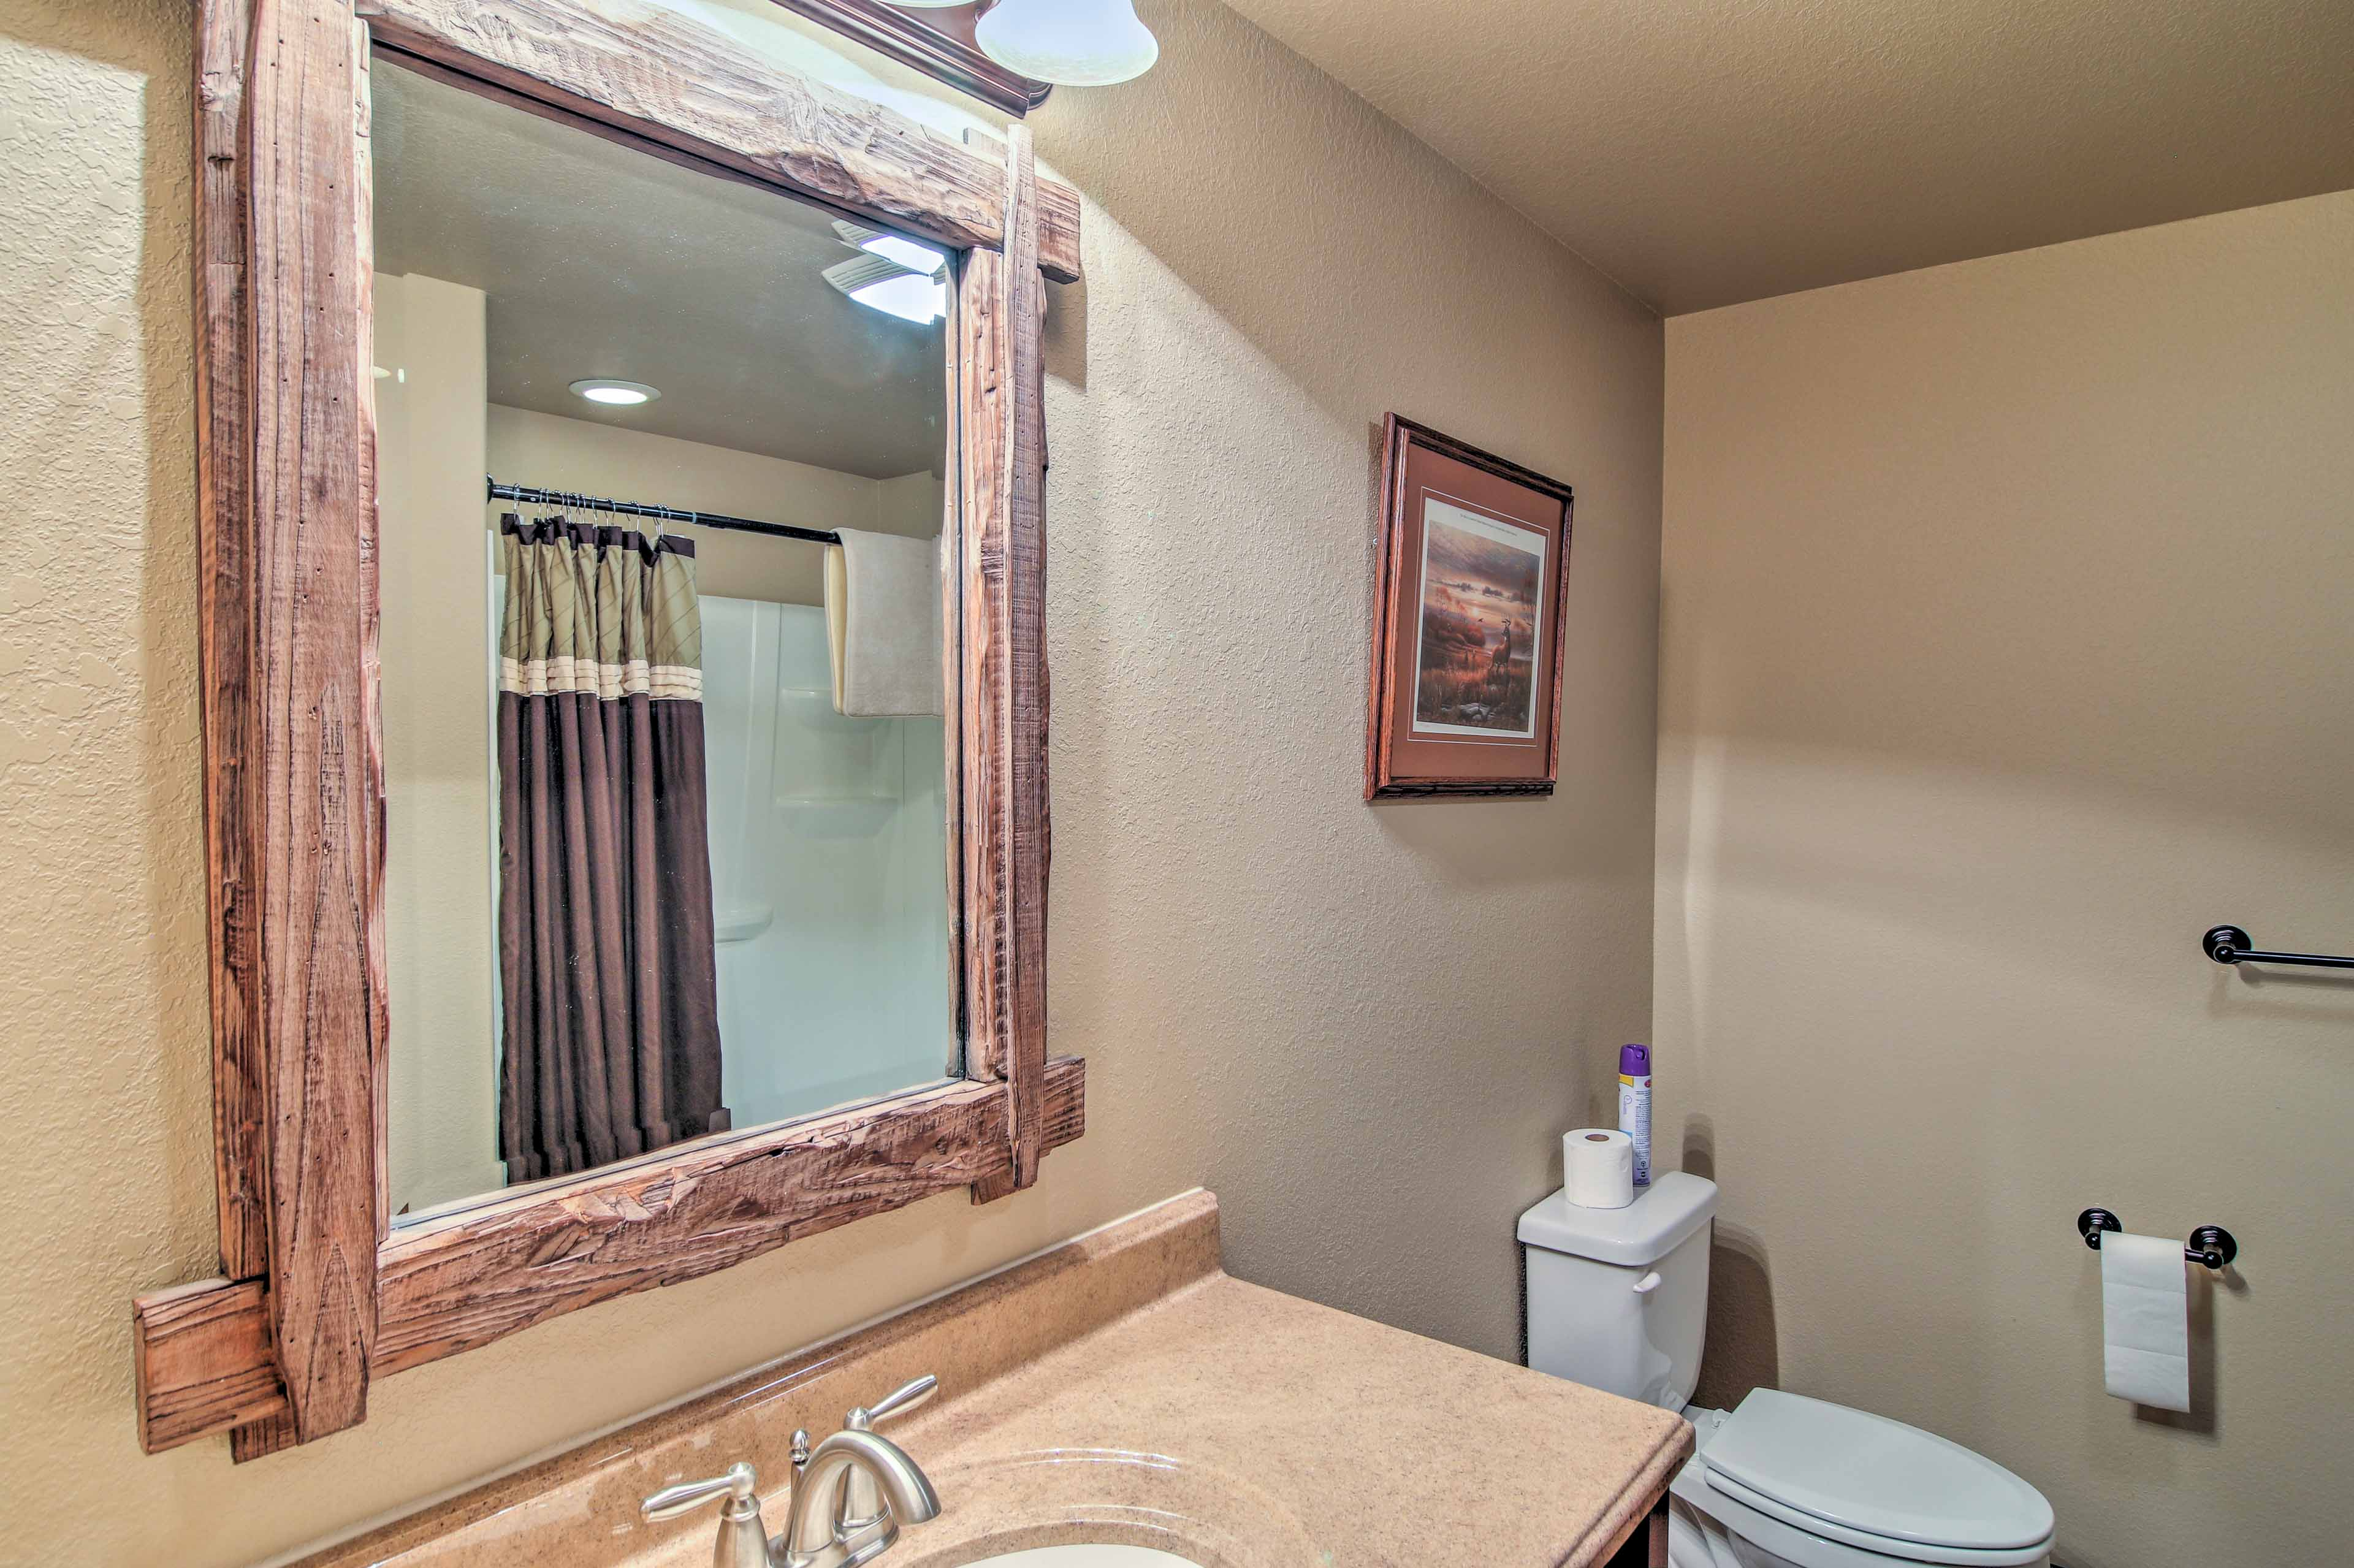 Rinse off in the single vanity and shower/tub combo found in the third bathroom.